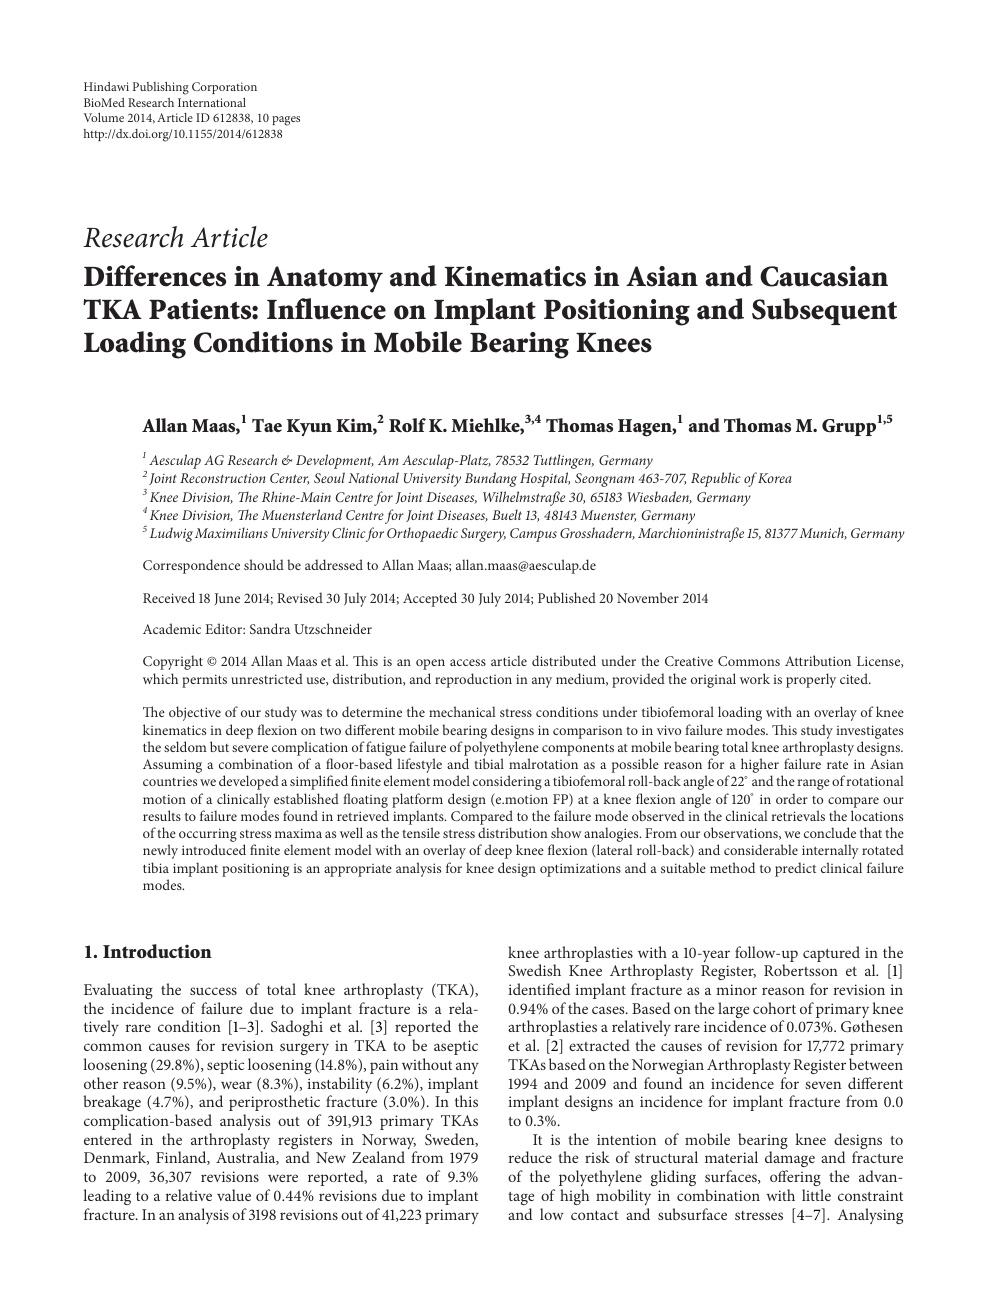 Differences In Anatomy And Kinematics In Asian And Caucasian Tka